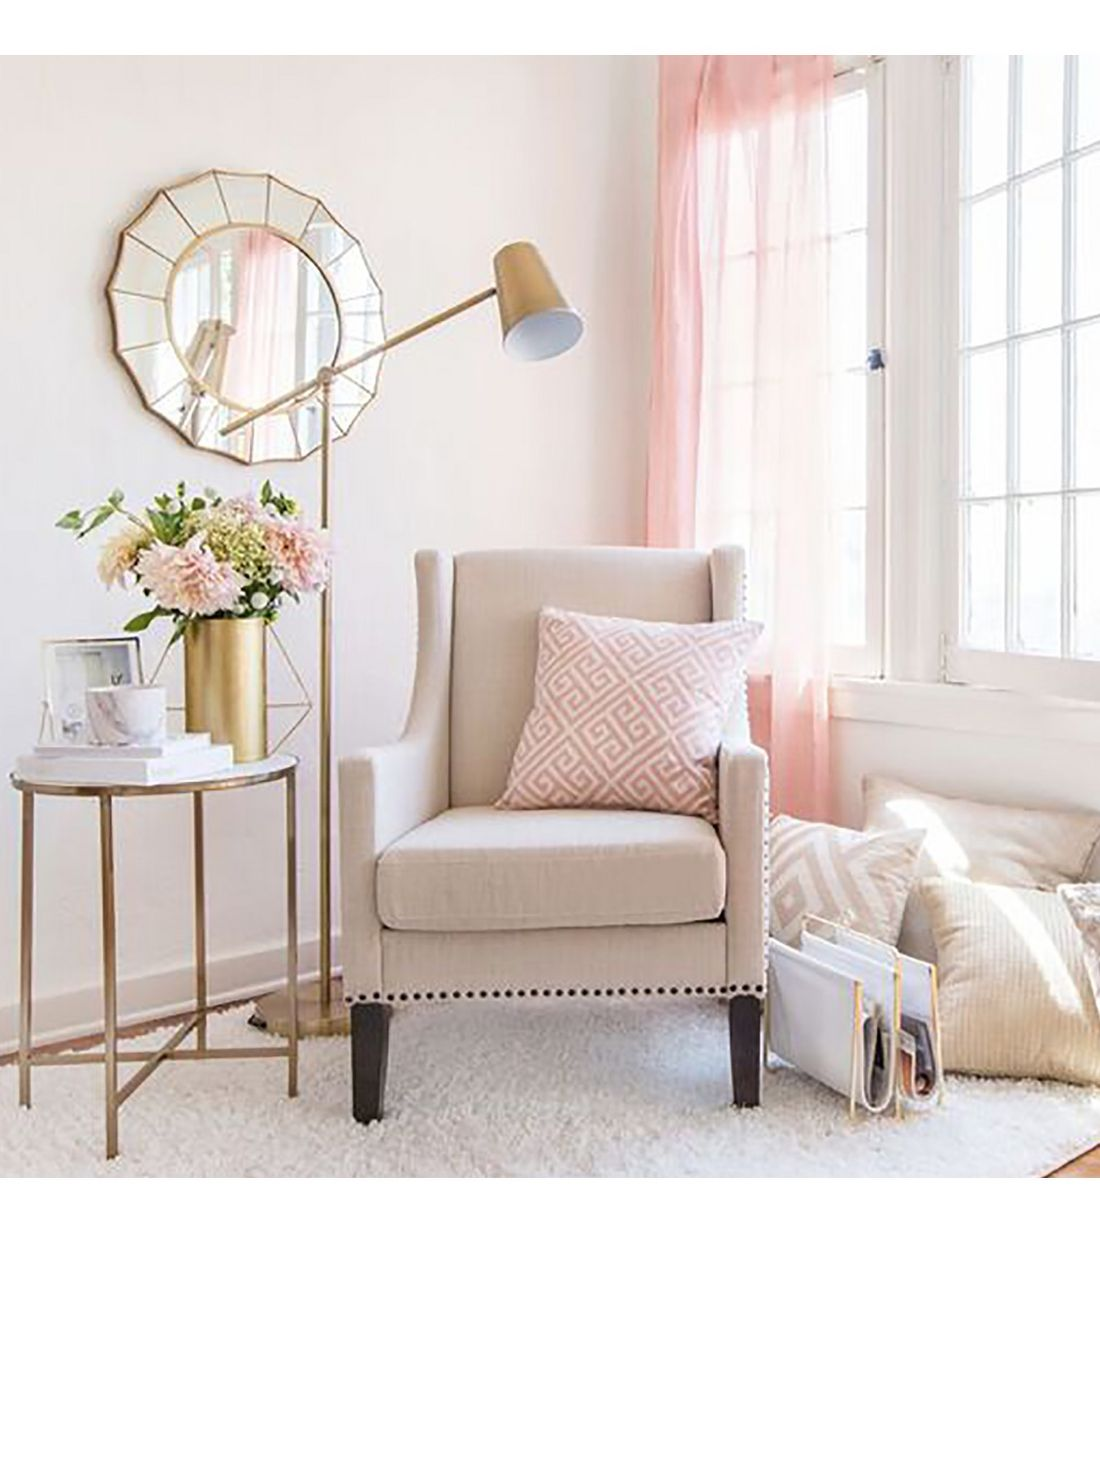 all bedroom glam rustic decor about